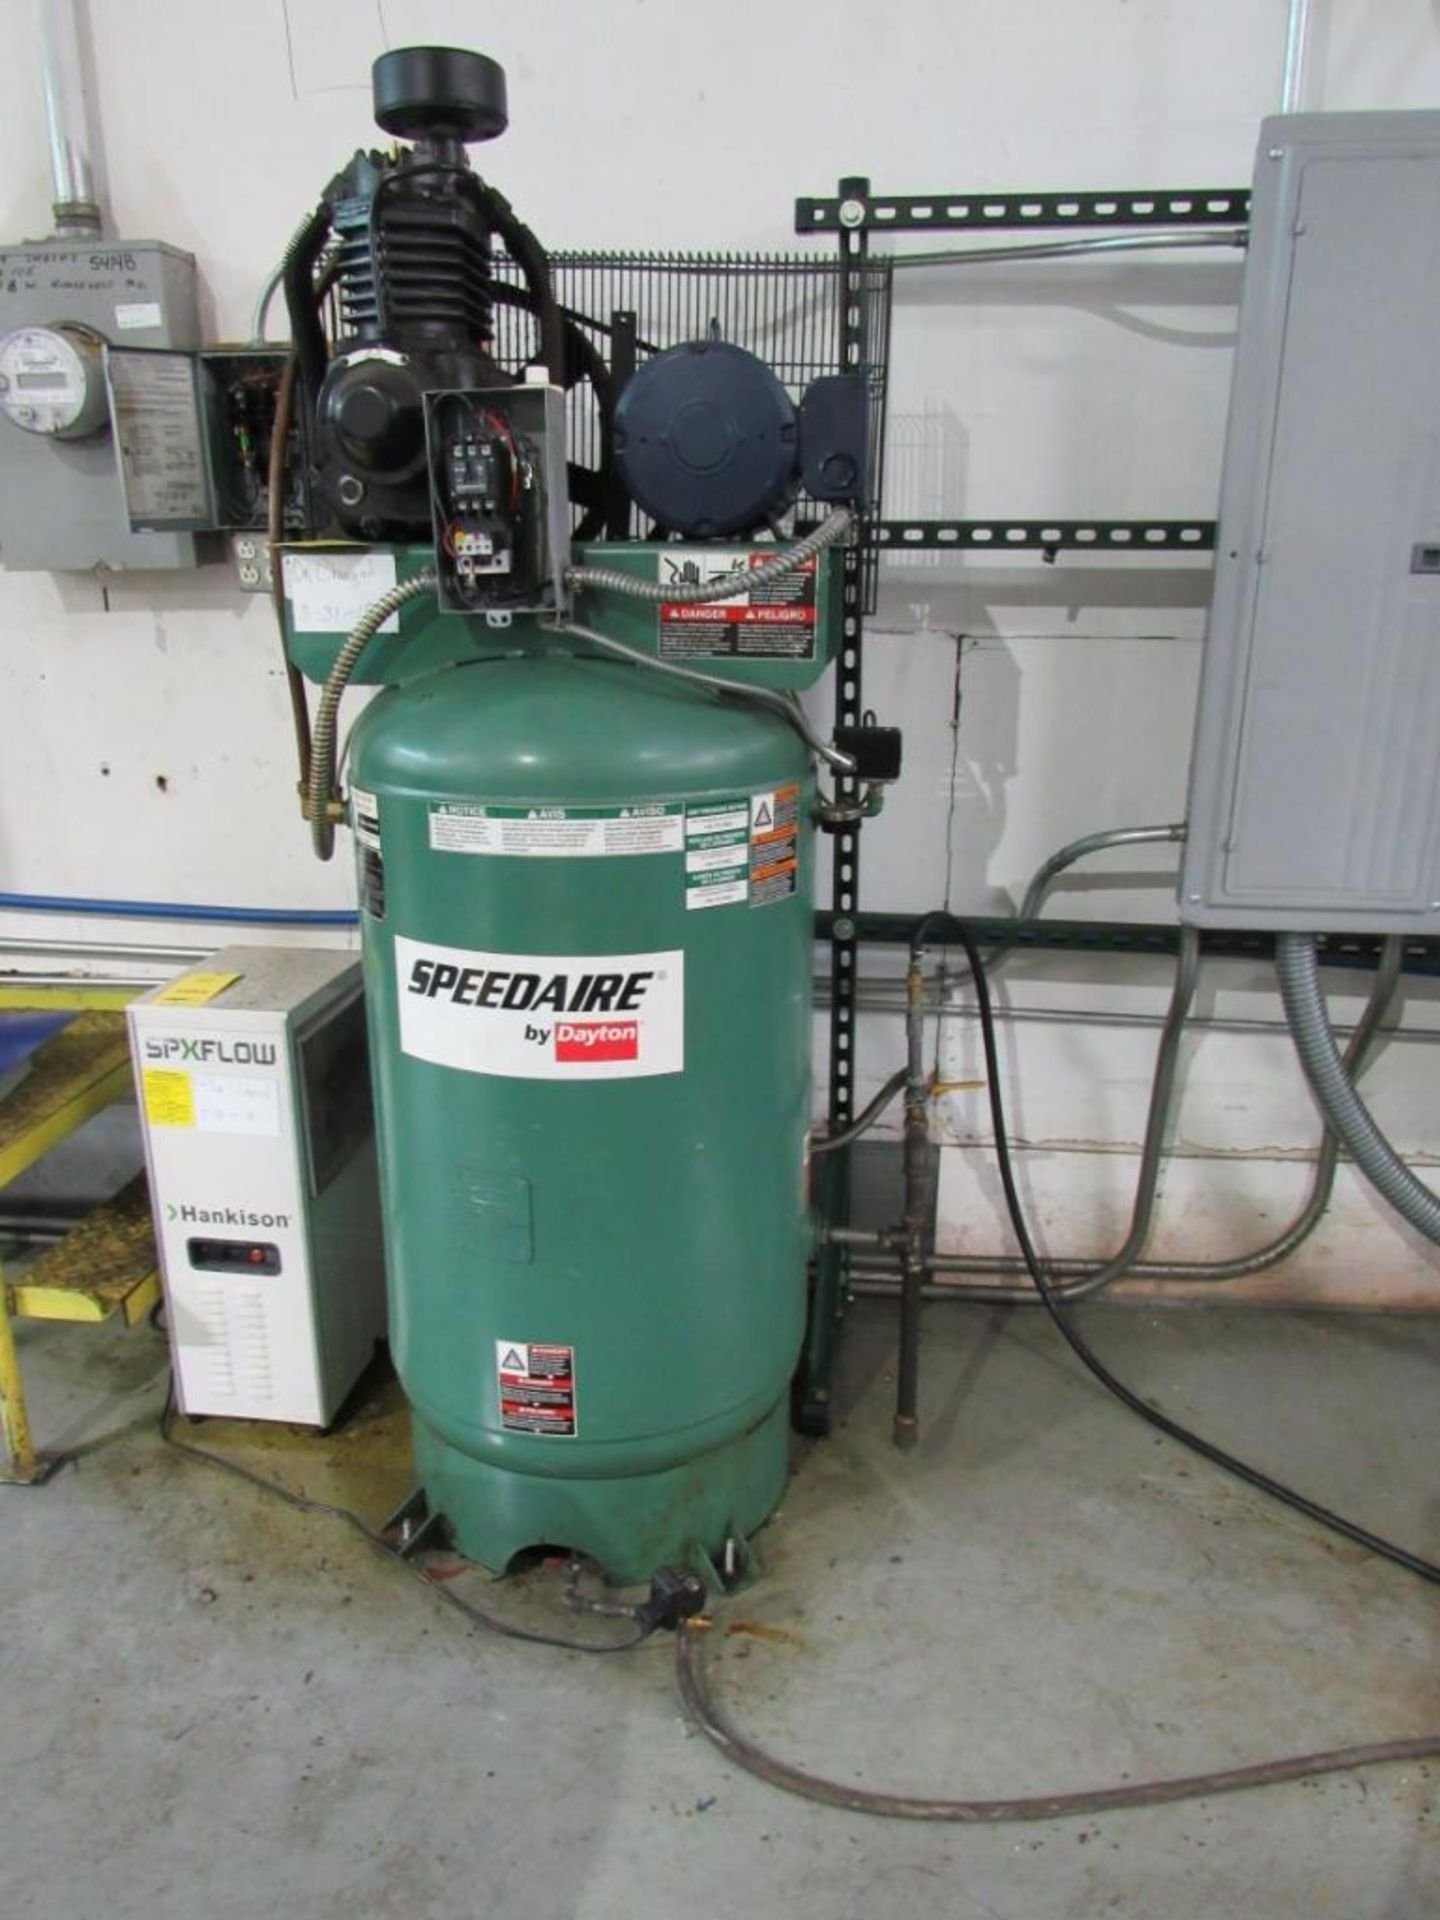 Speedaire Vertical Air Compressor, Model 4XA59, 5 HP, S/N N/A